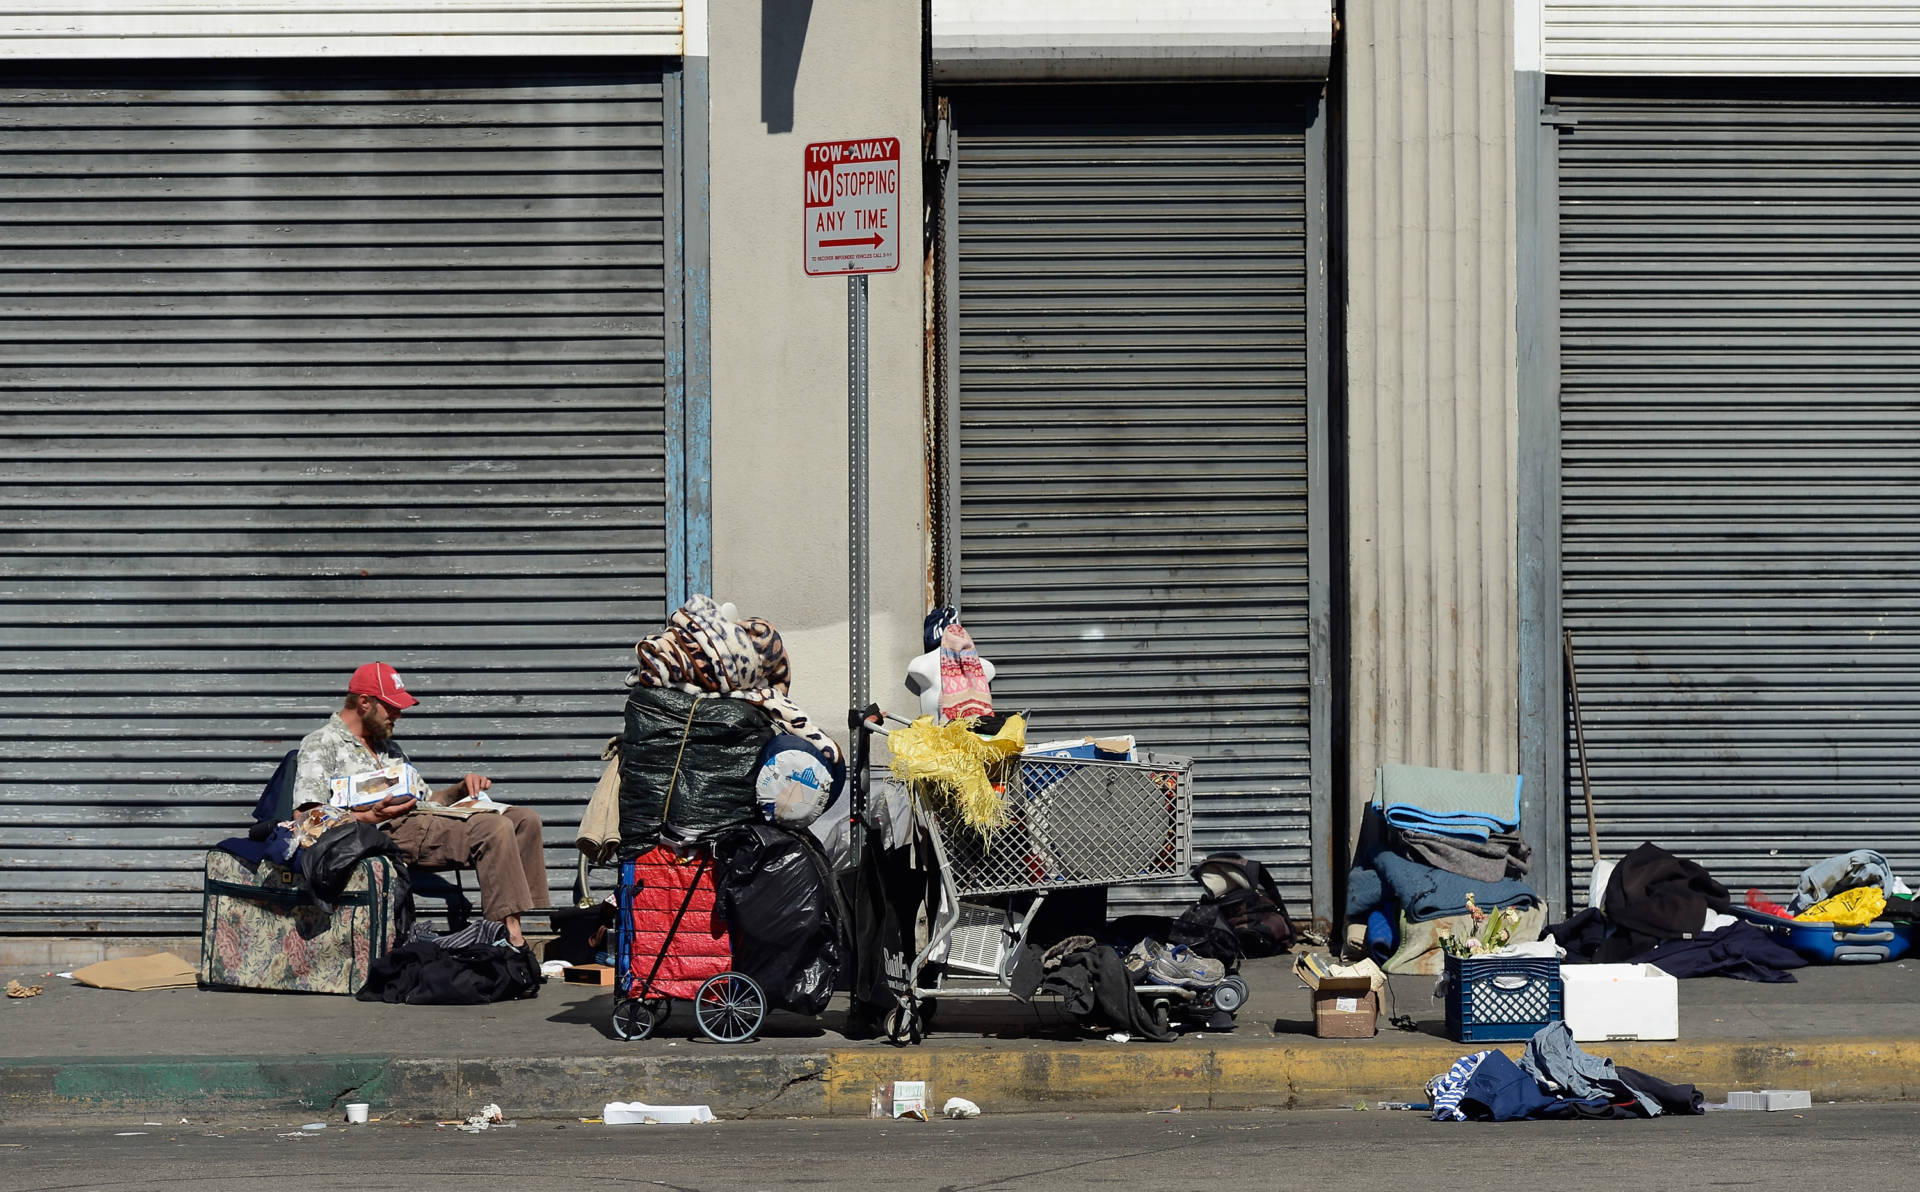 California To Spend Billions to Tackle Homelessness